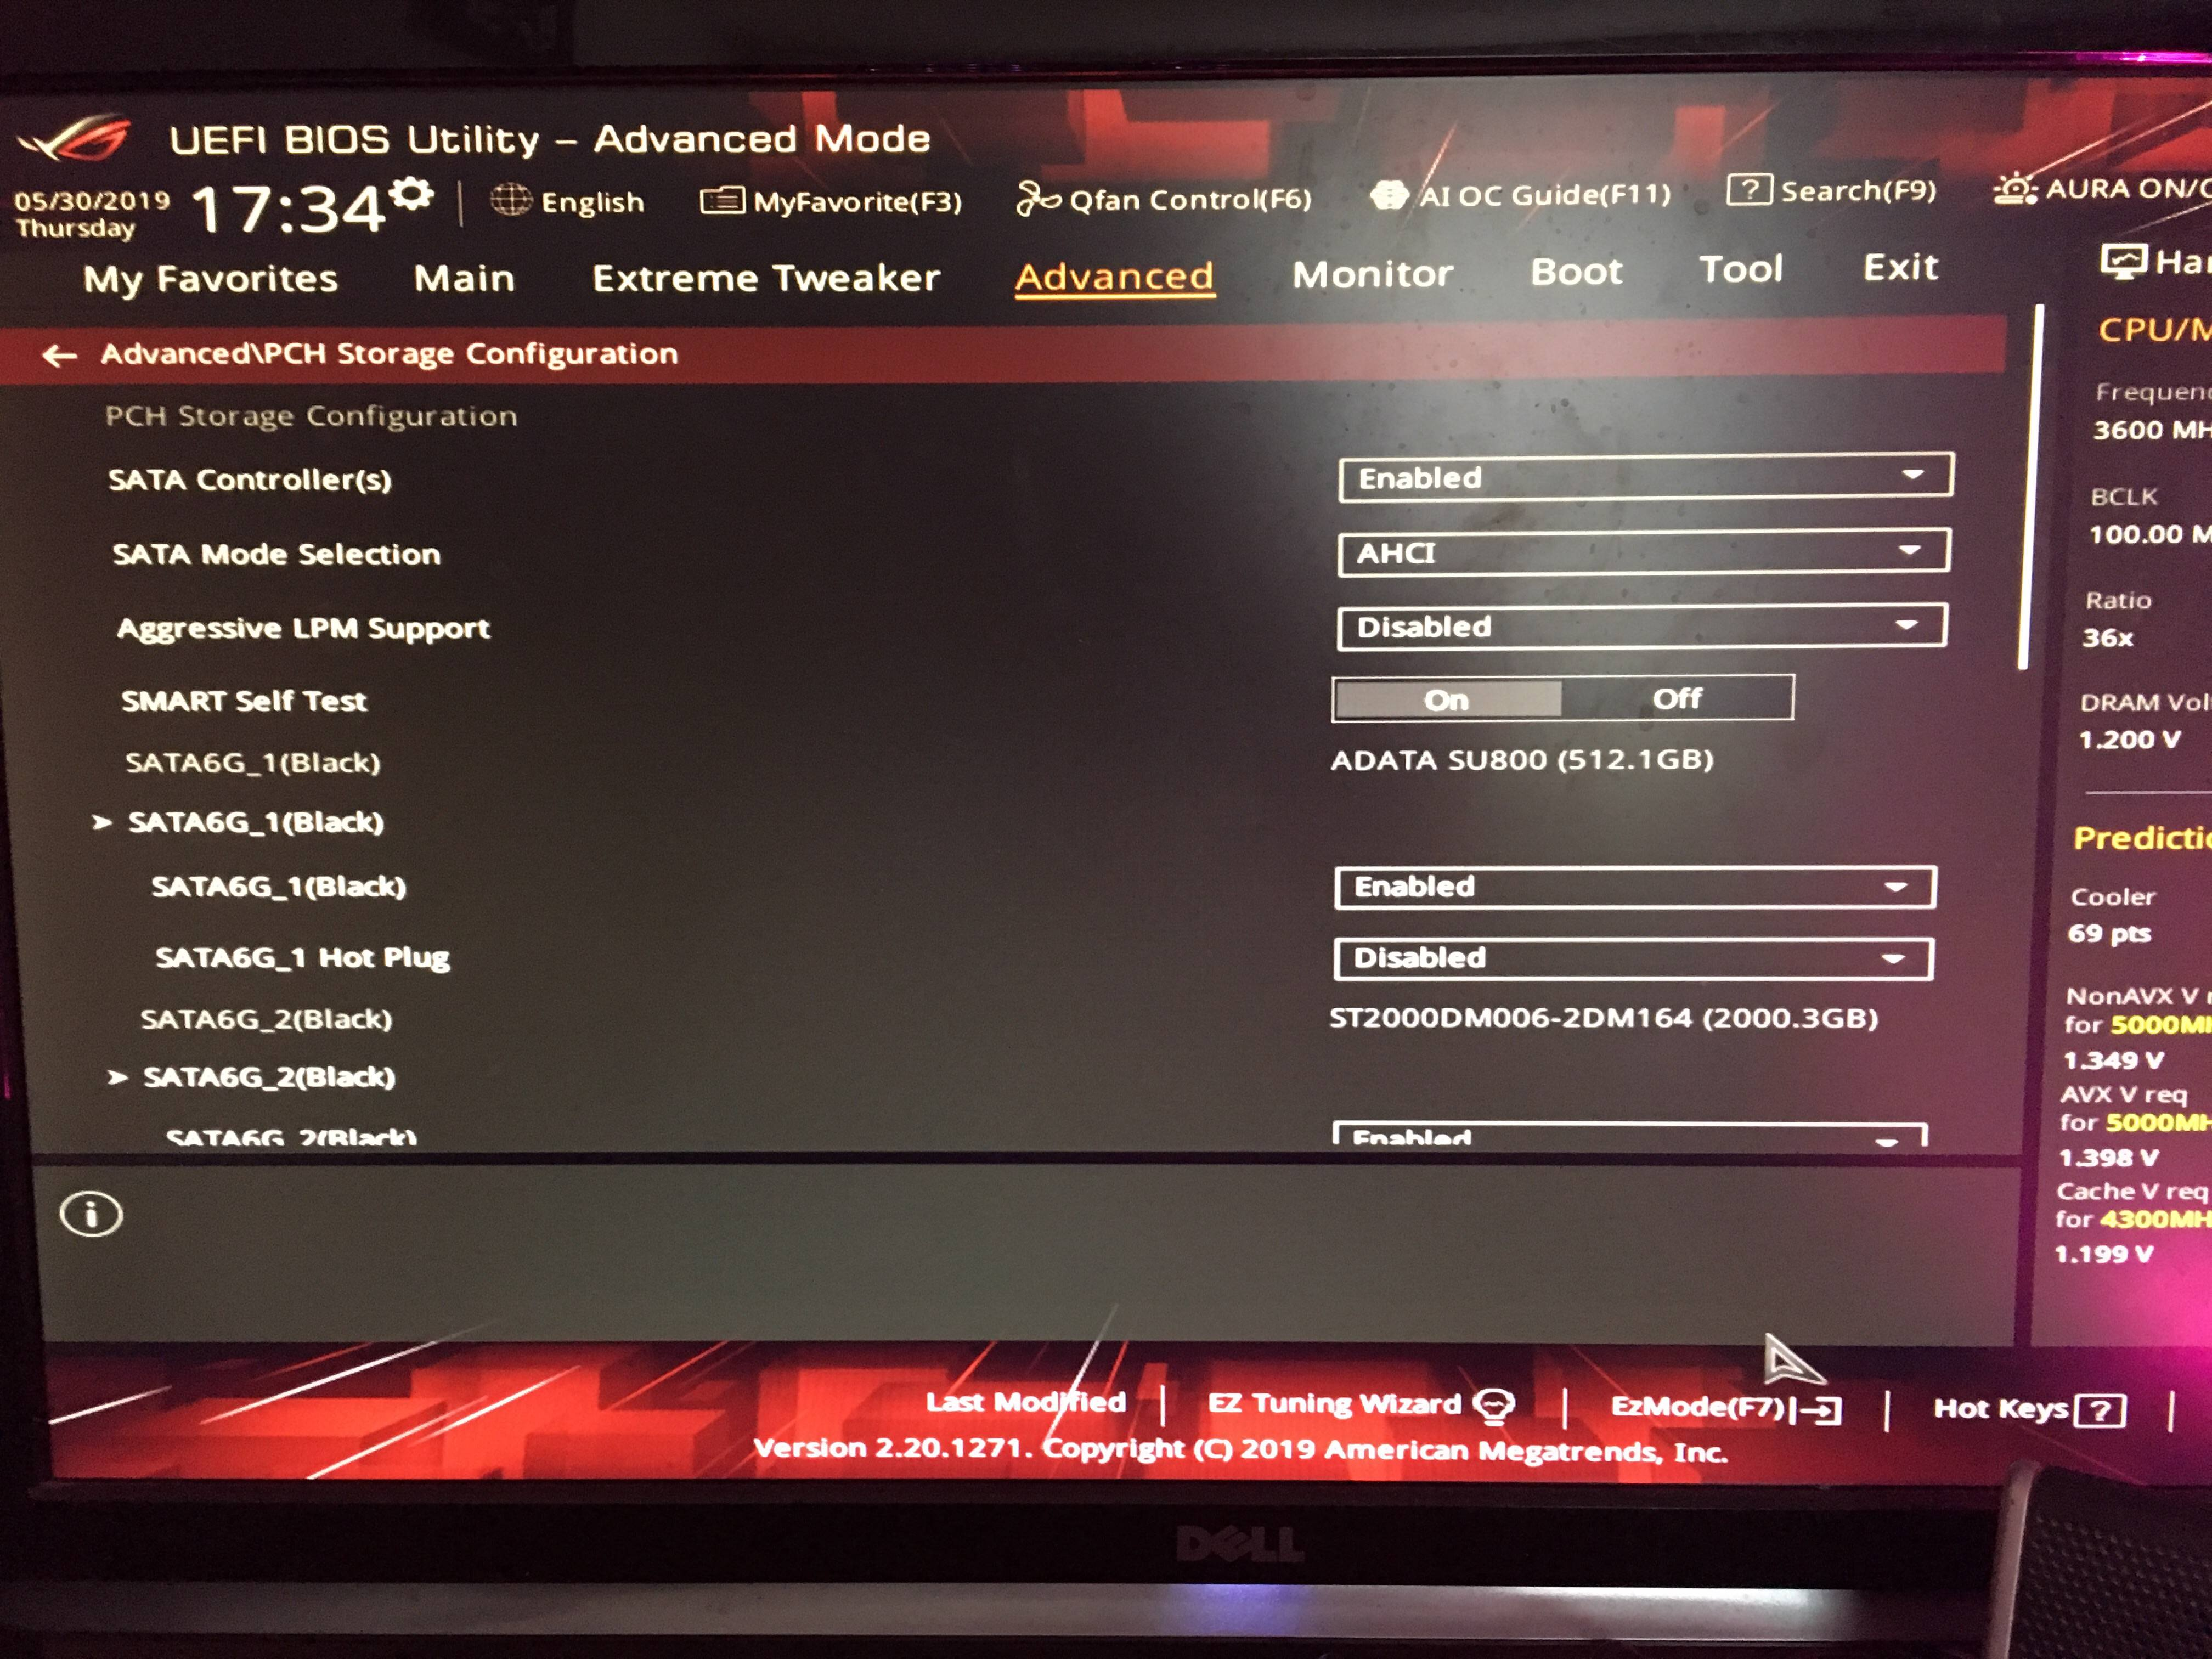 Asus ROG Maximus XI hero WiFi board gives me post code A9